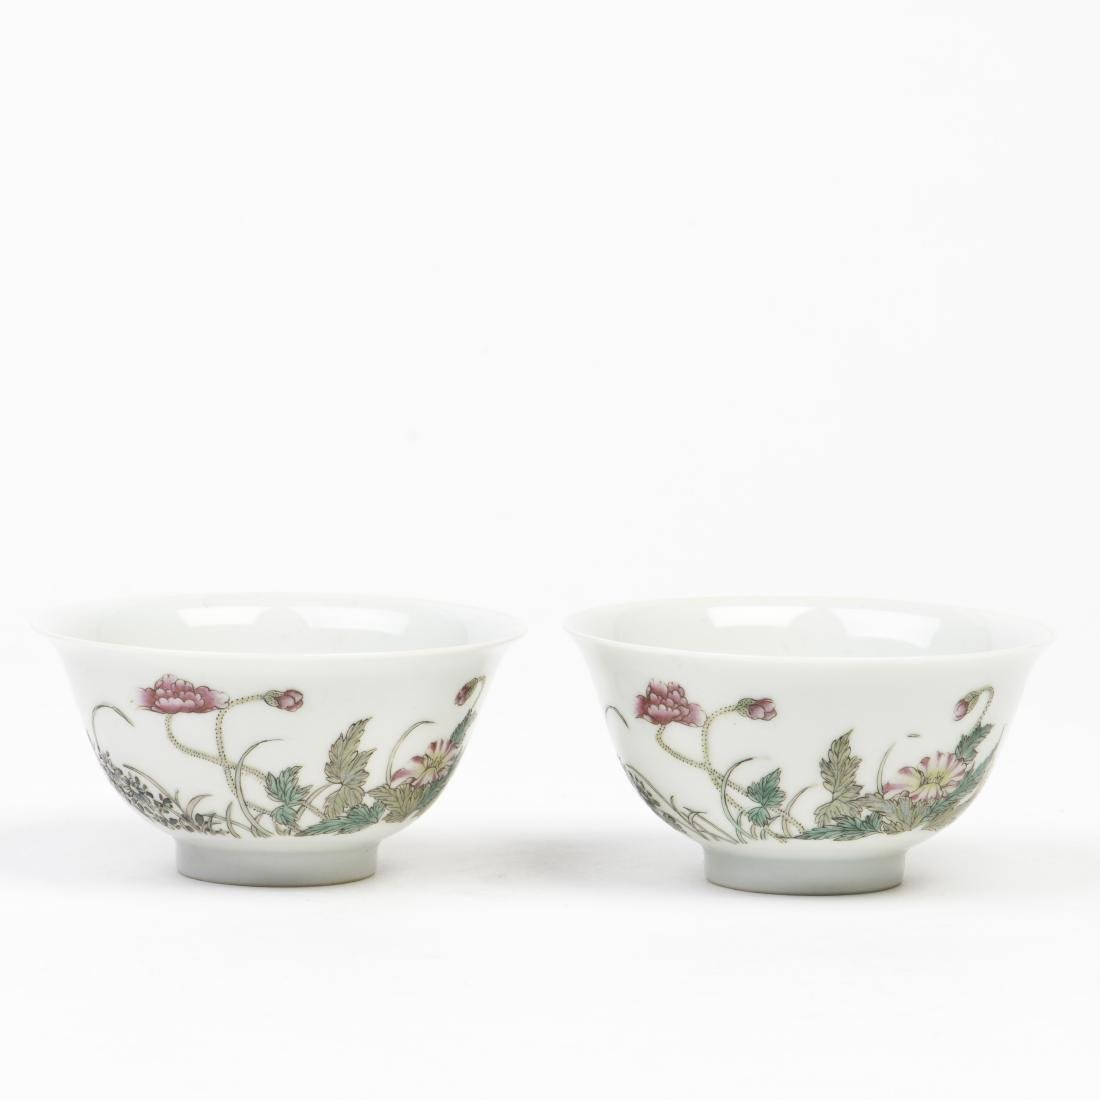 A PAIR OF FAMILLE-ROSE 'FLOWER' TEA CUPS